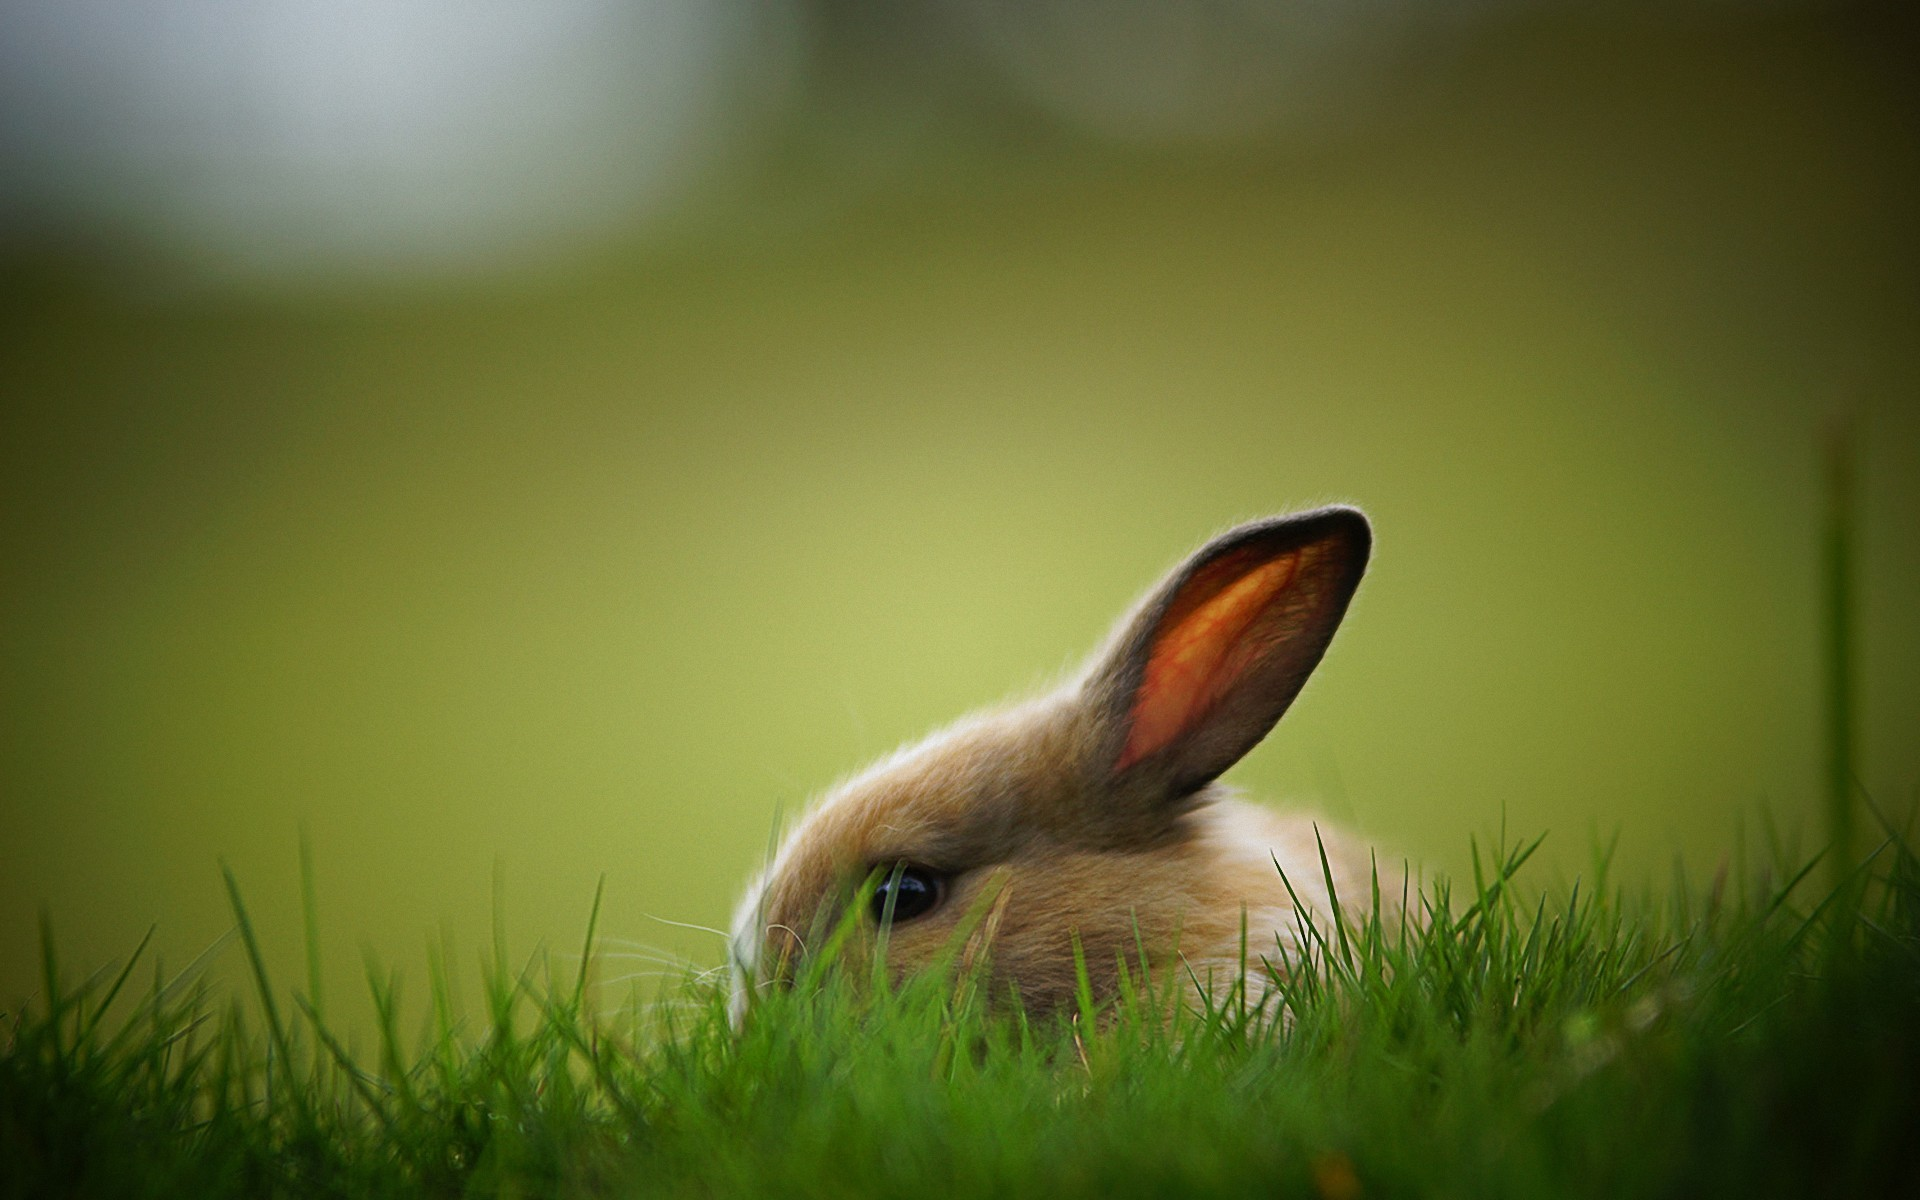 Rabbit Wallpapers HD Pictures – One HD Wallpaper Pictures